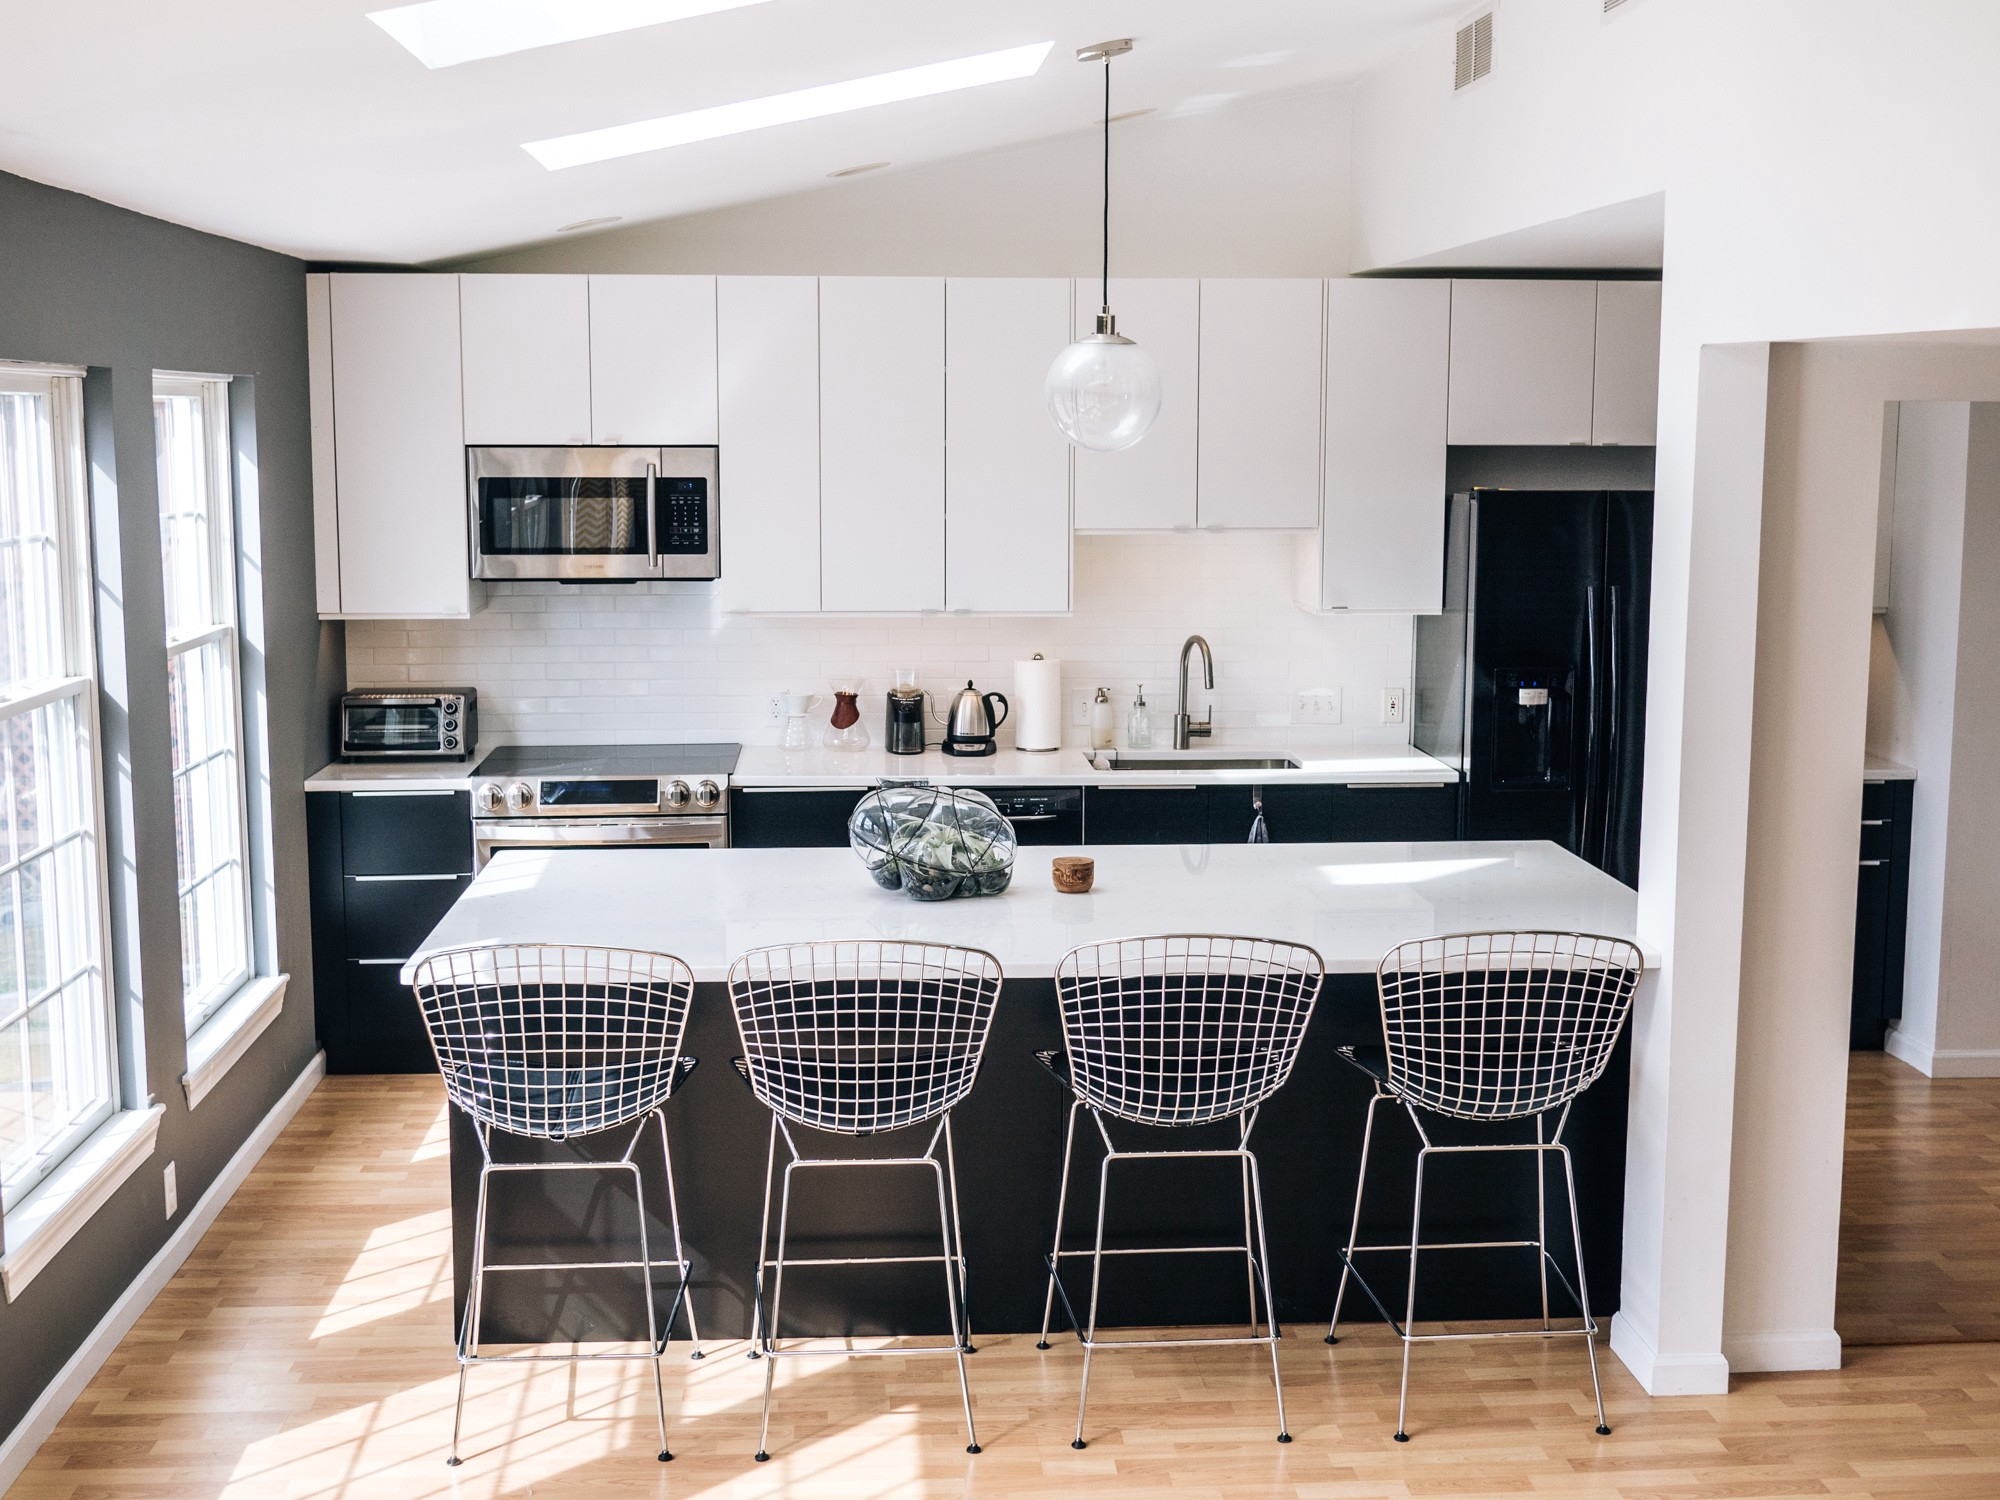 Our Modern Kitchen Remodel: Designing a Space We Love  by Jeff